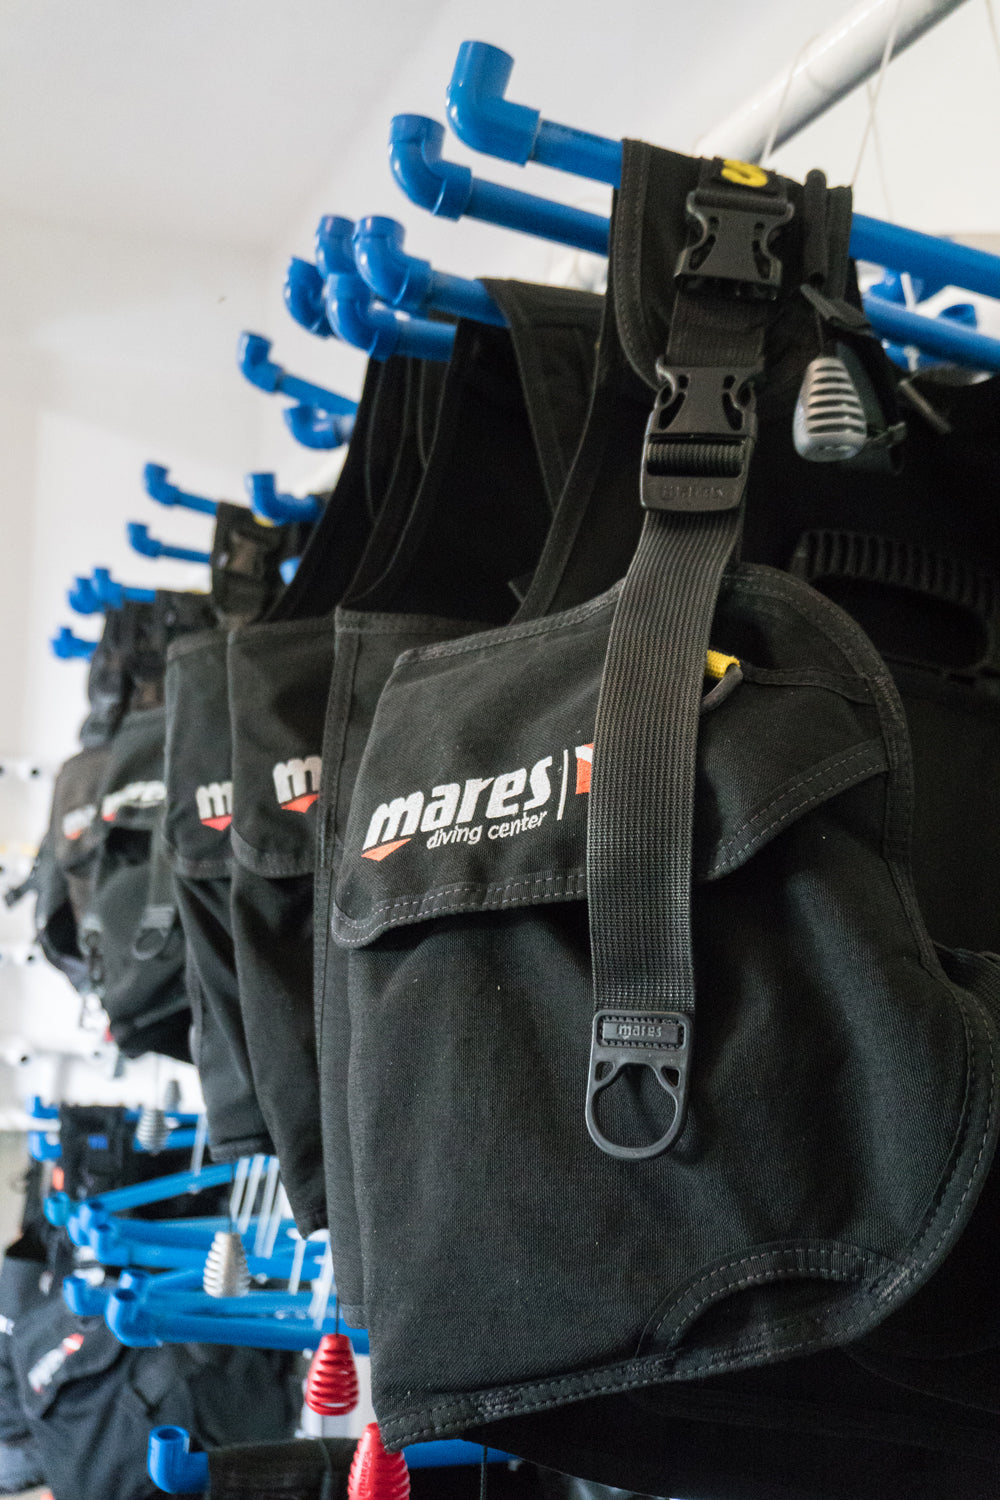 Dive equipment rental